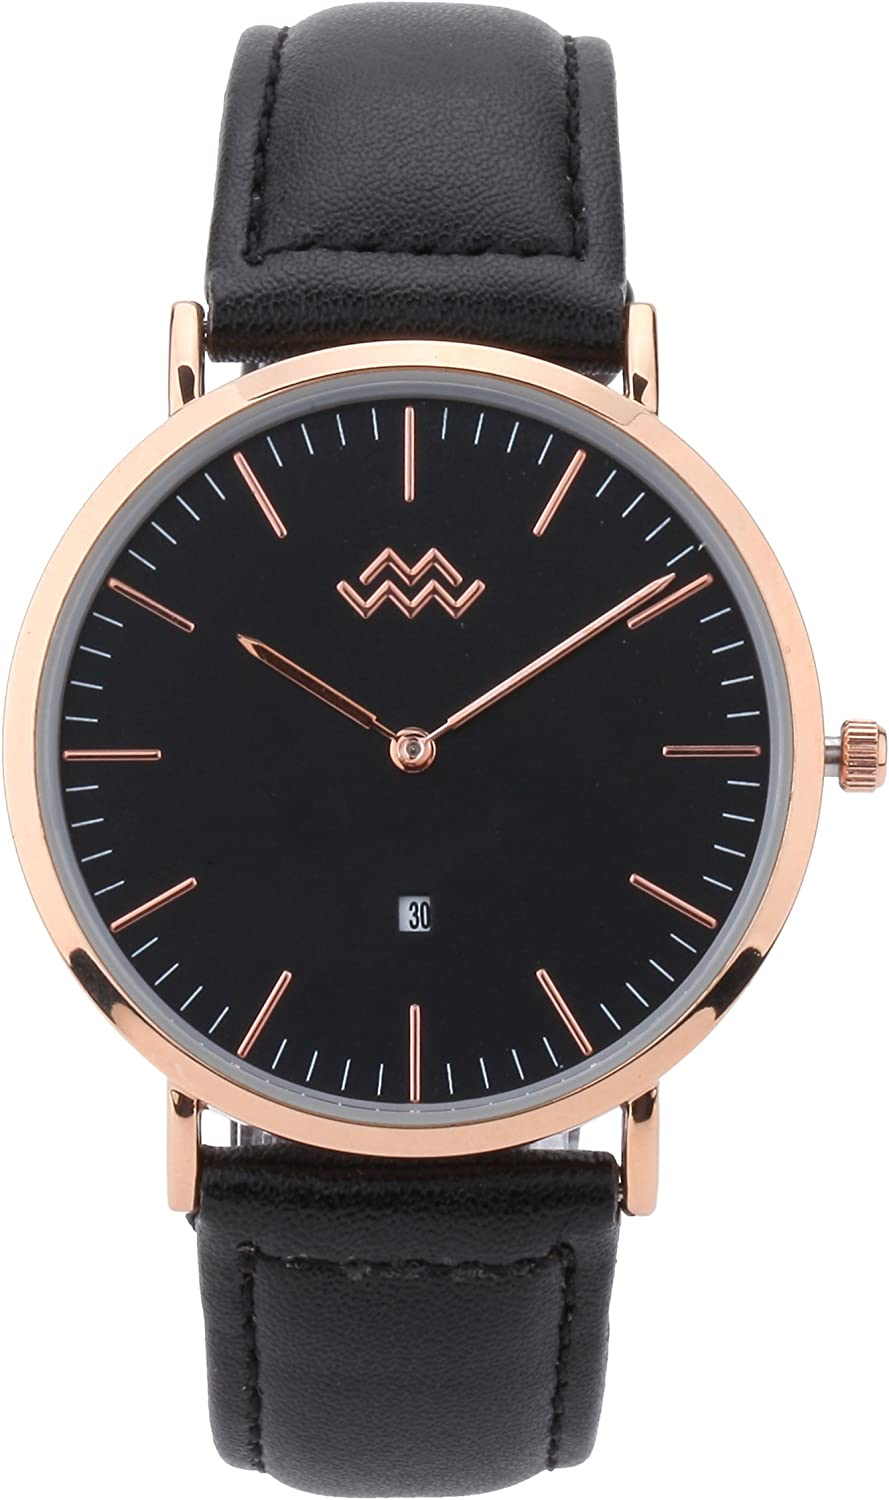 Mio Marino Mens Leather Watch - Men Wrist Watches for Fashion Daily bargain sale lowest price